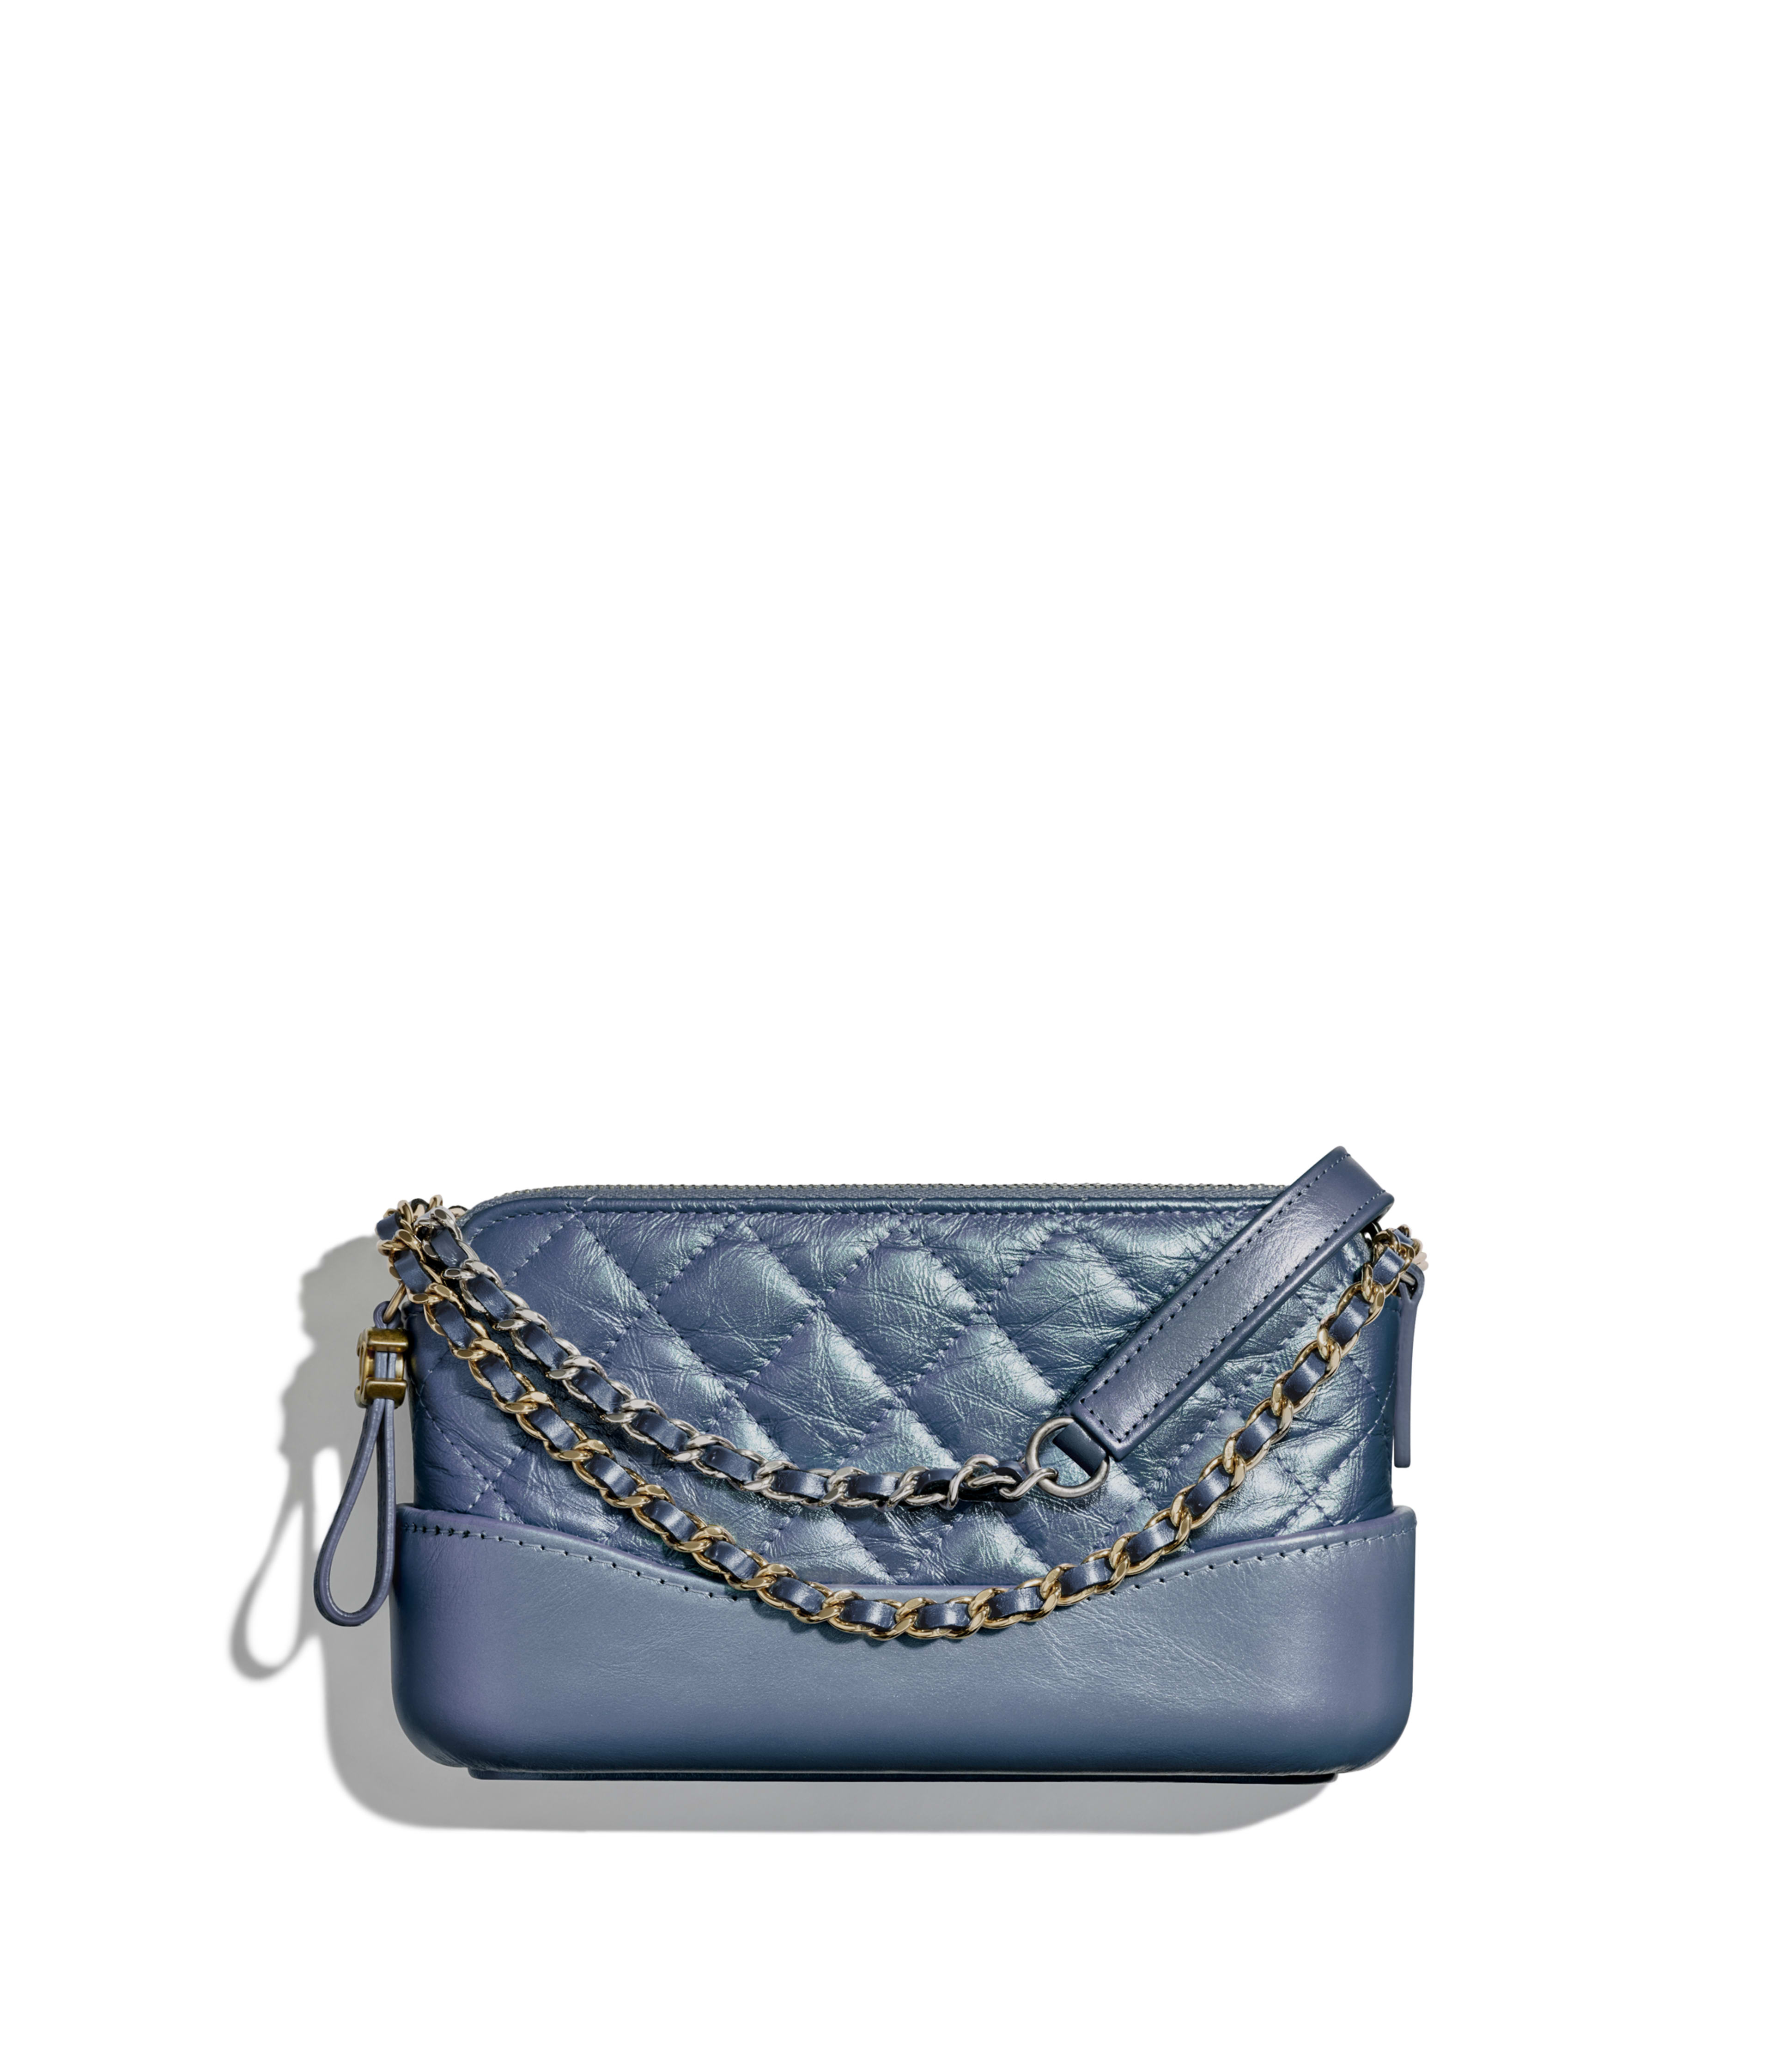 5a7328a536 Clutches with Chain - Small leather goods